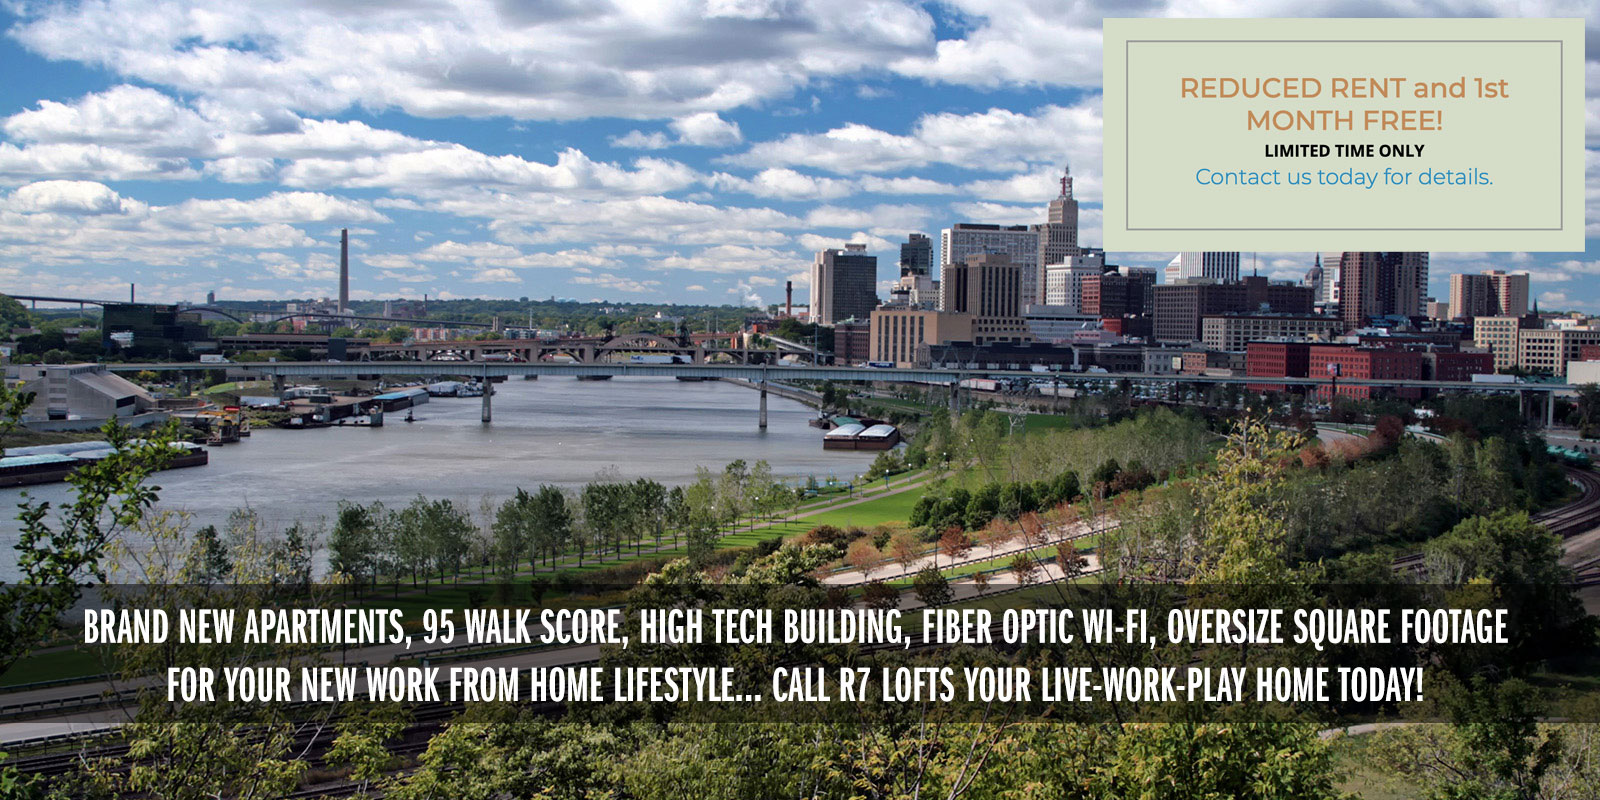 work-from-home-apartment-stpaul